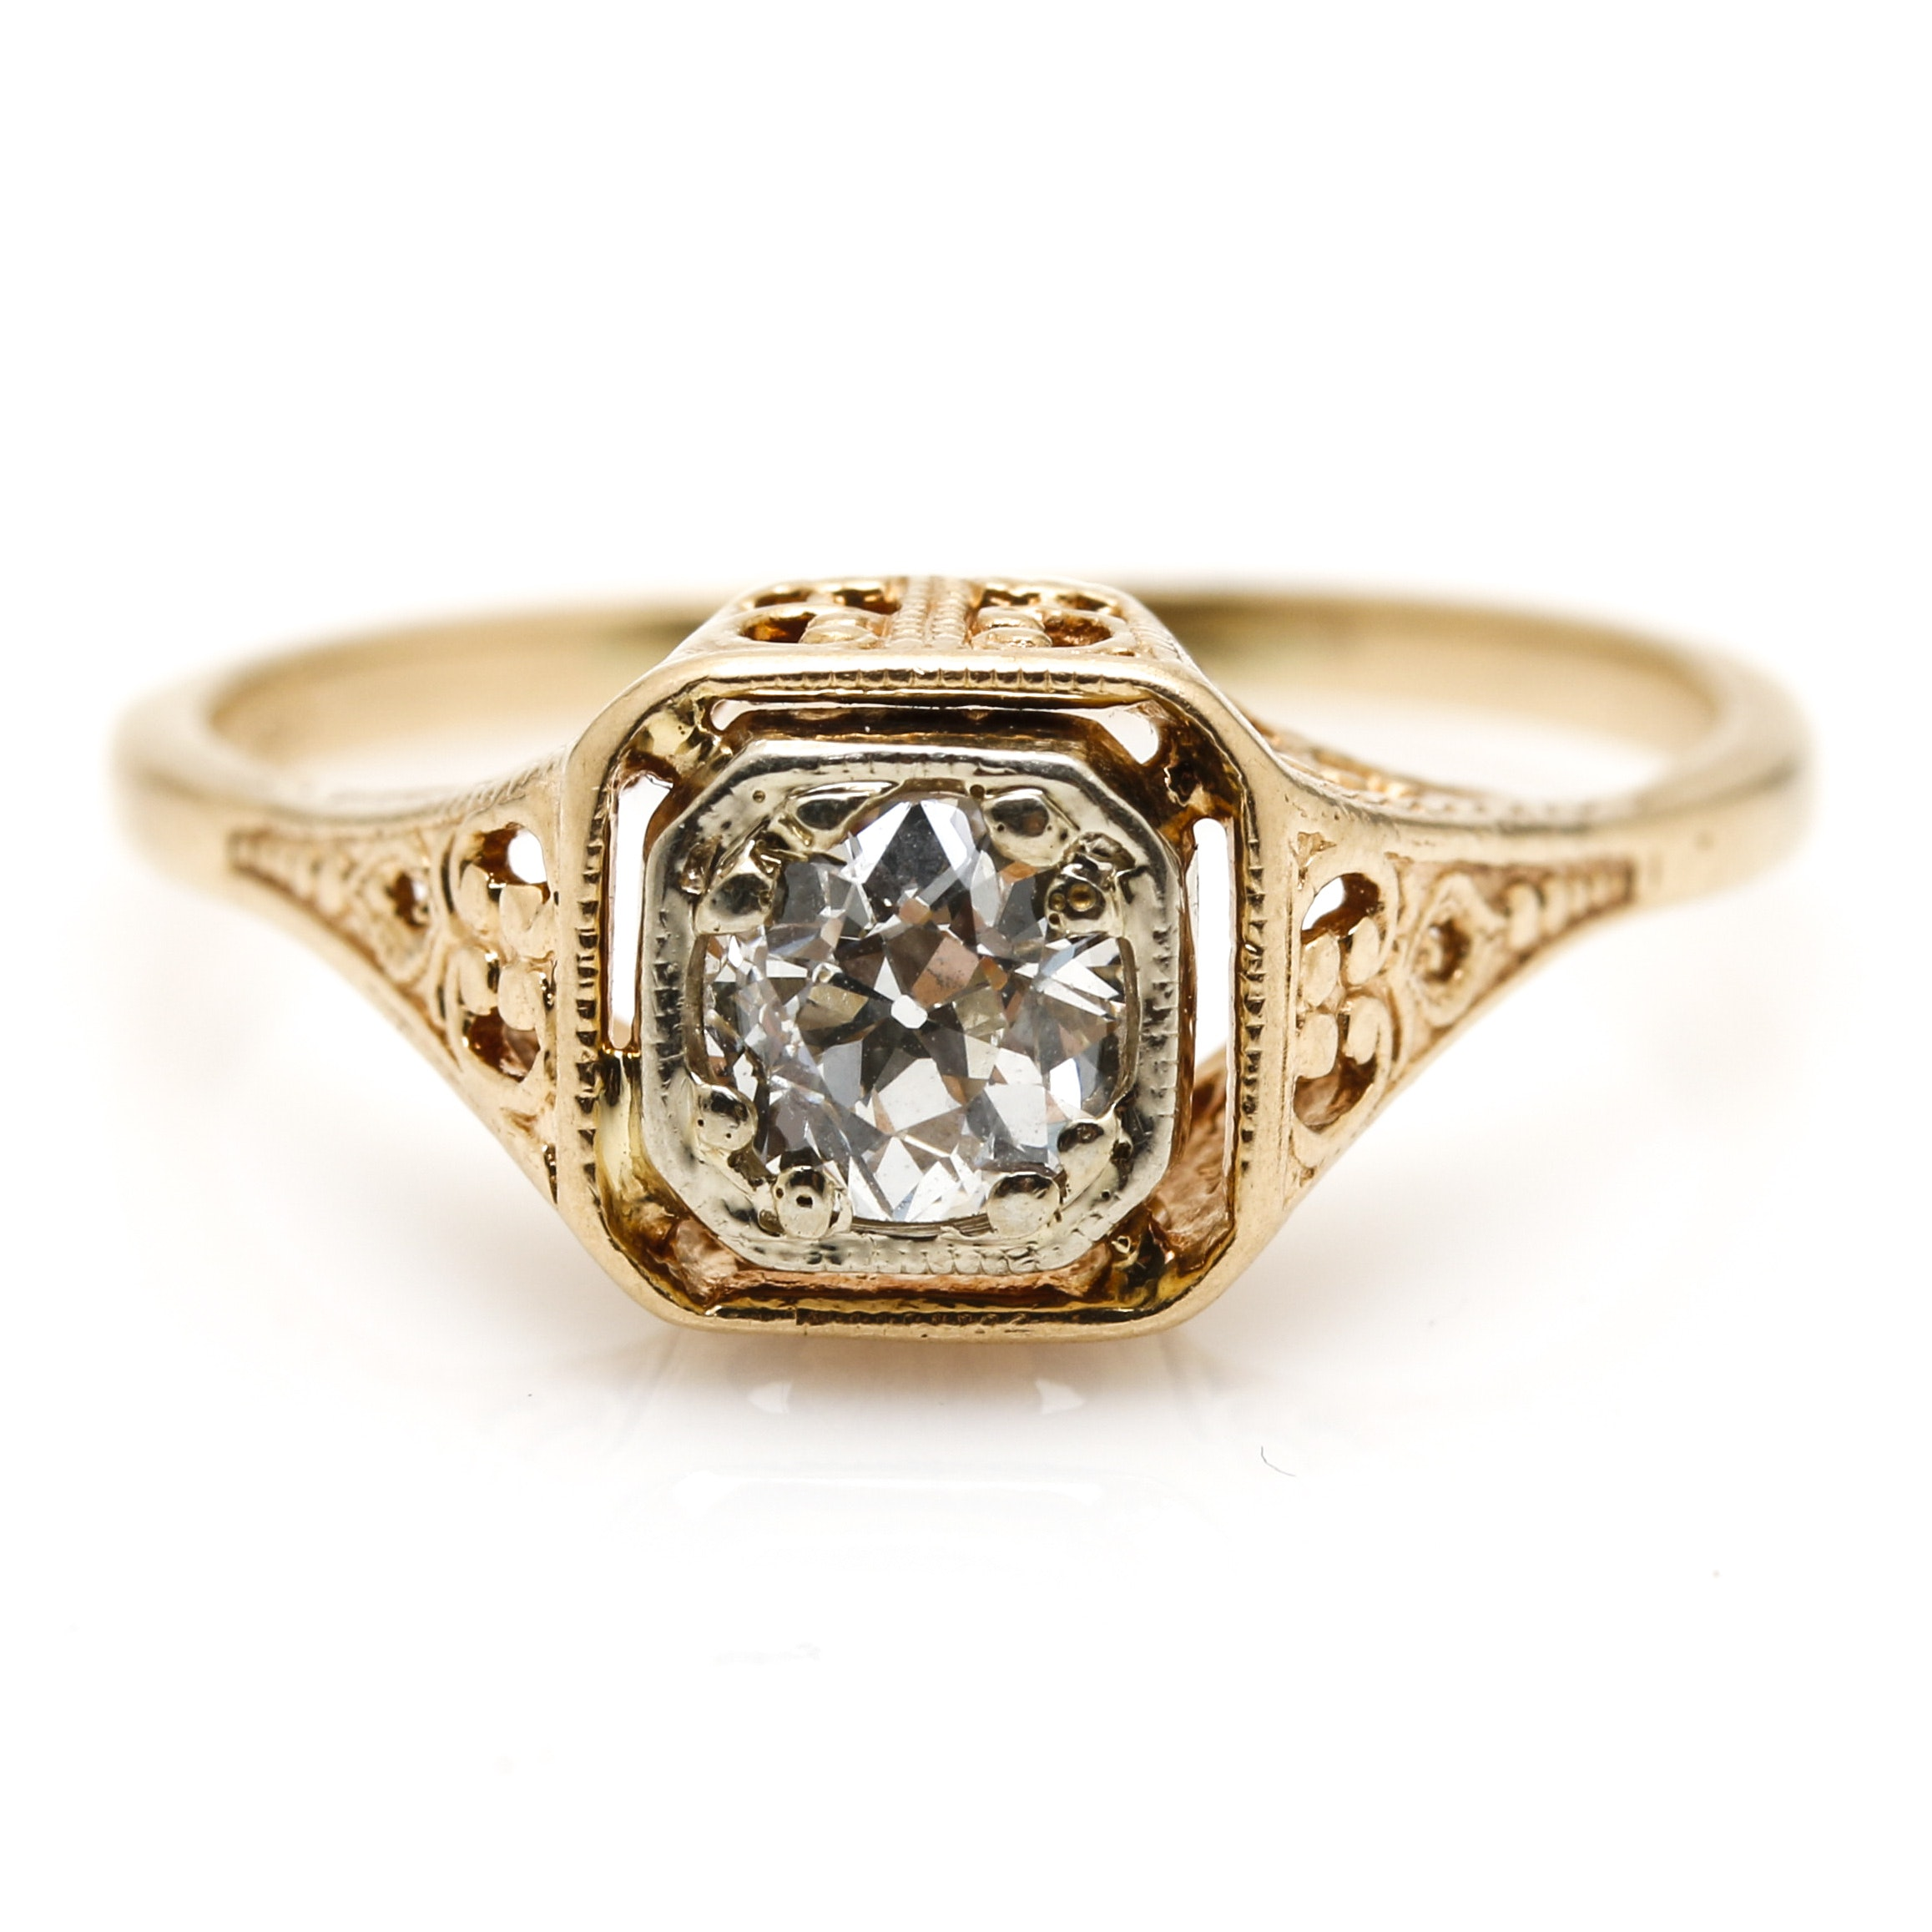 14K Yellow Gold Edwardian Diamond Ring